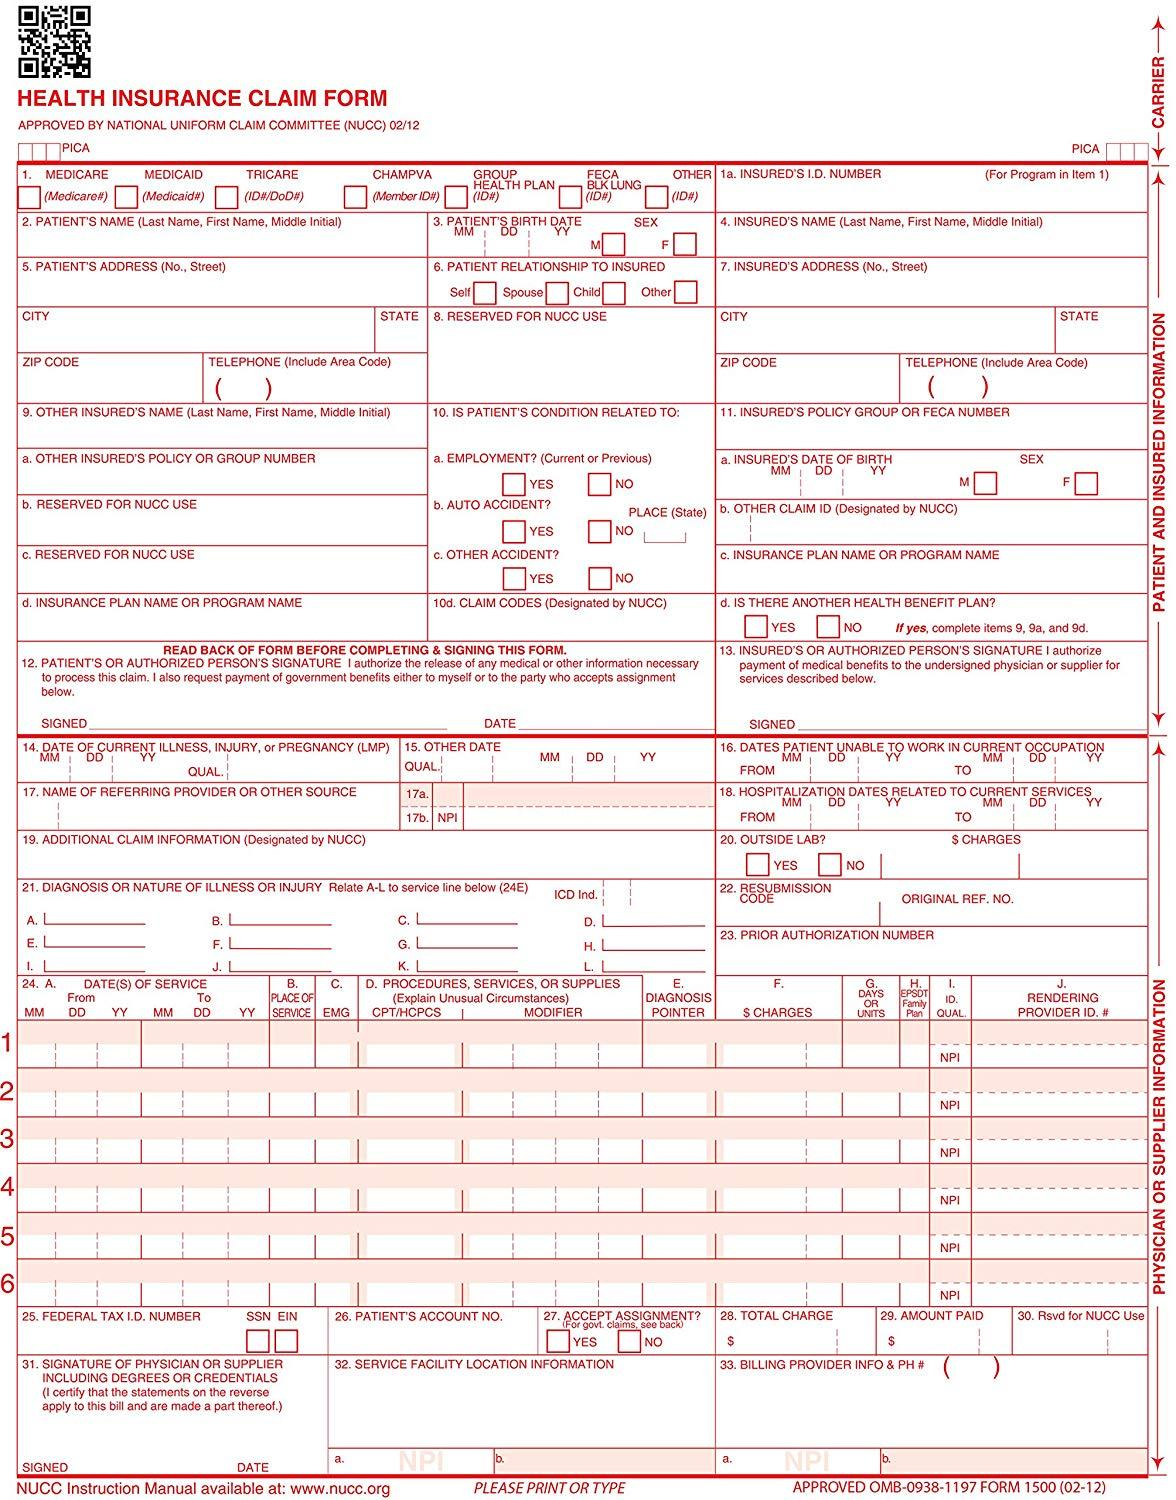 Revised Cms 1500 Health Insurance Claim Form 08 05